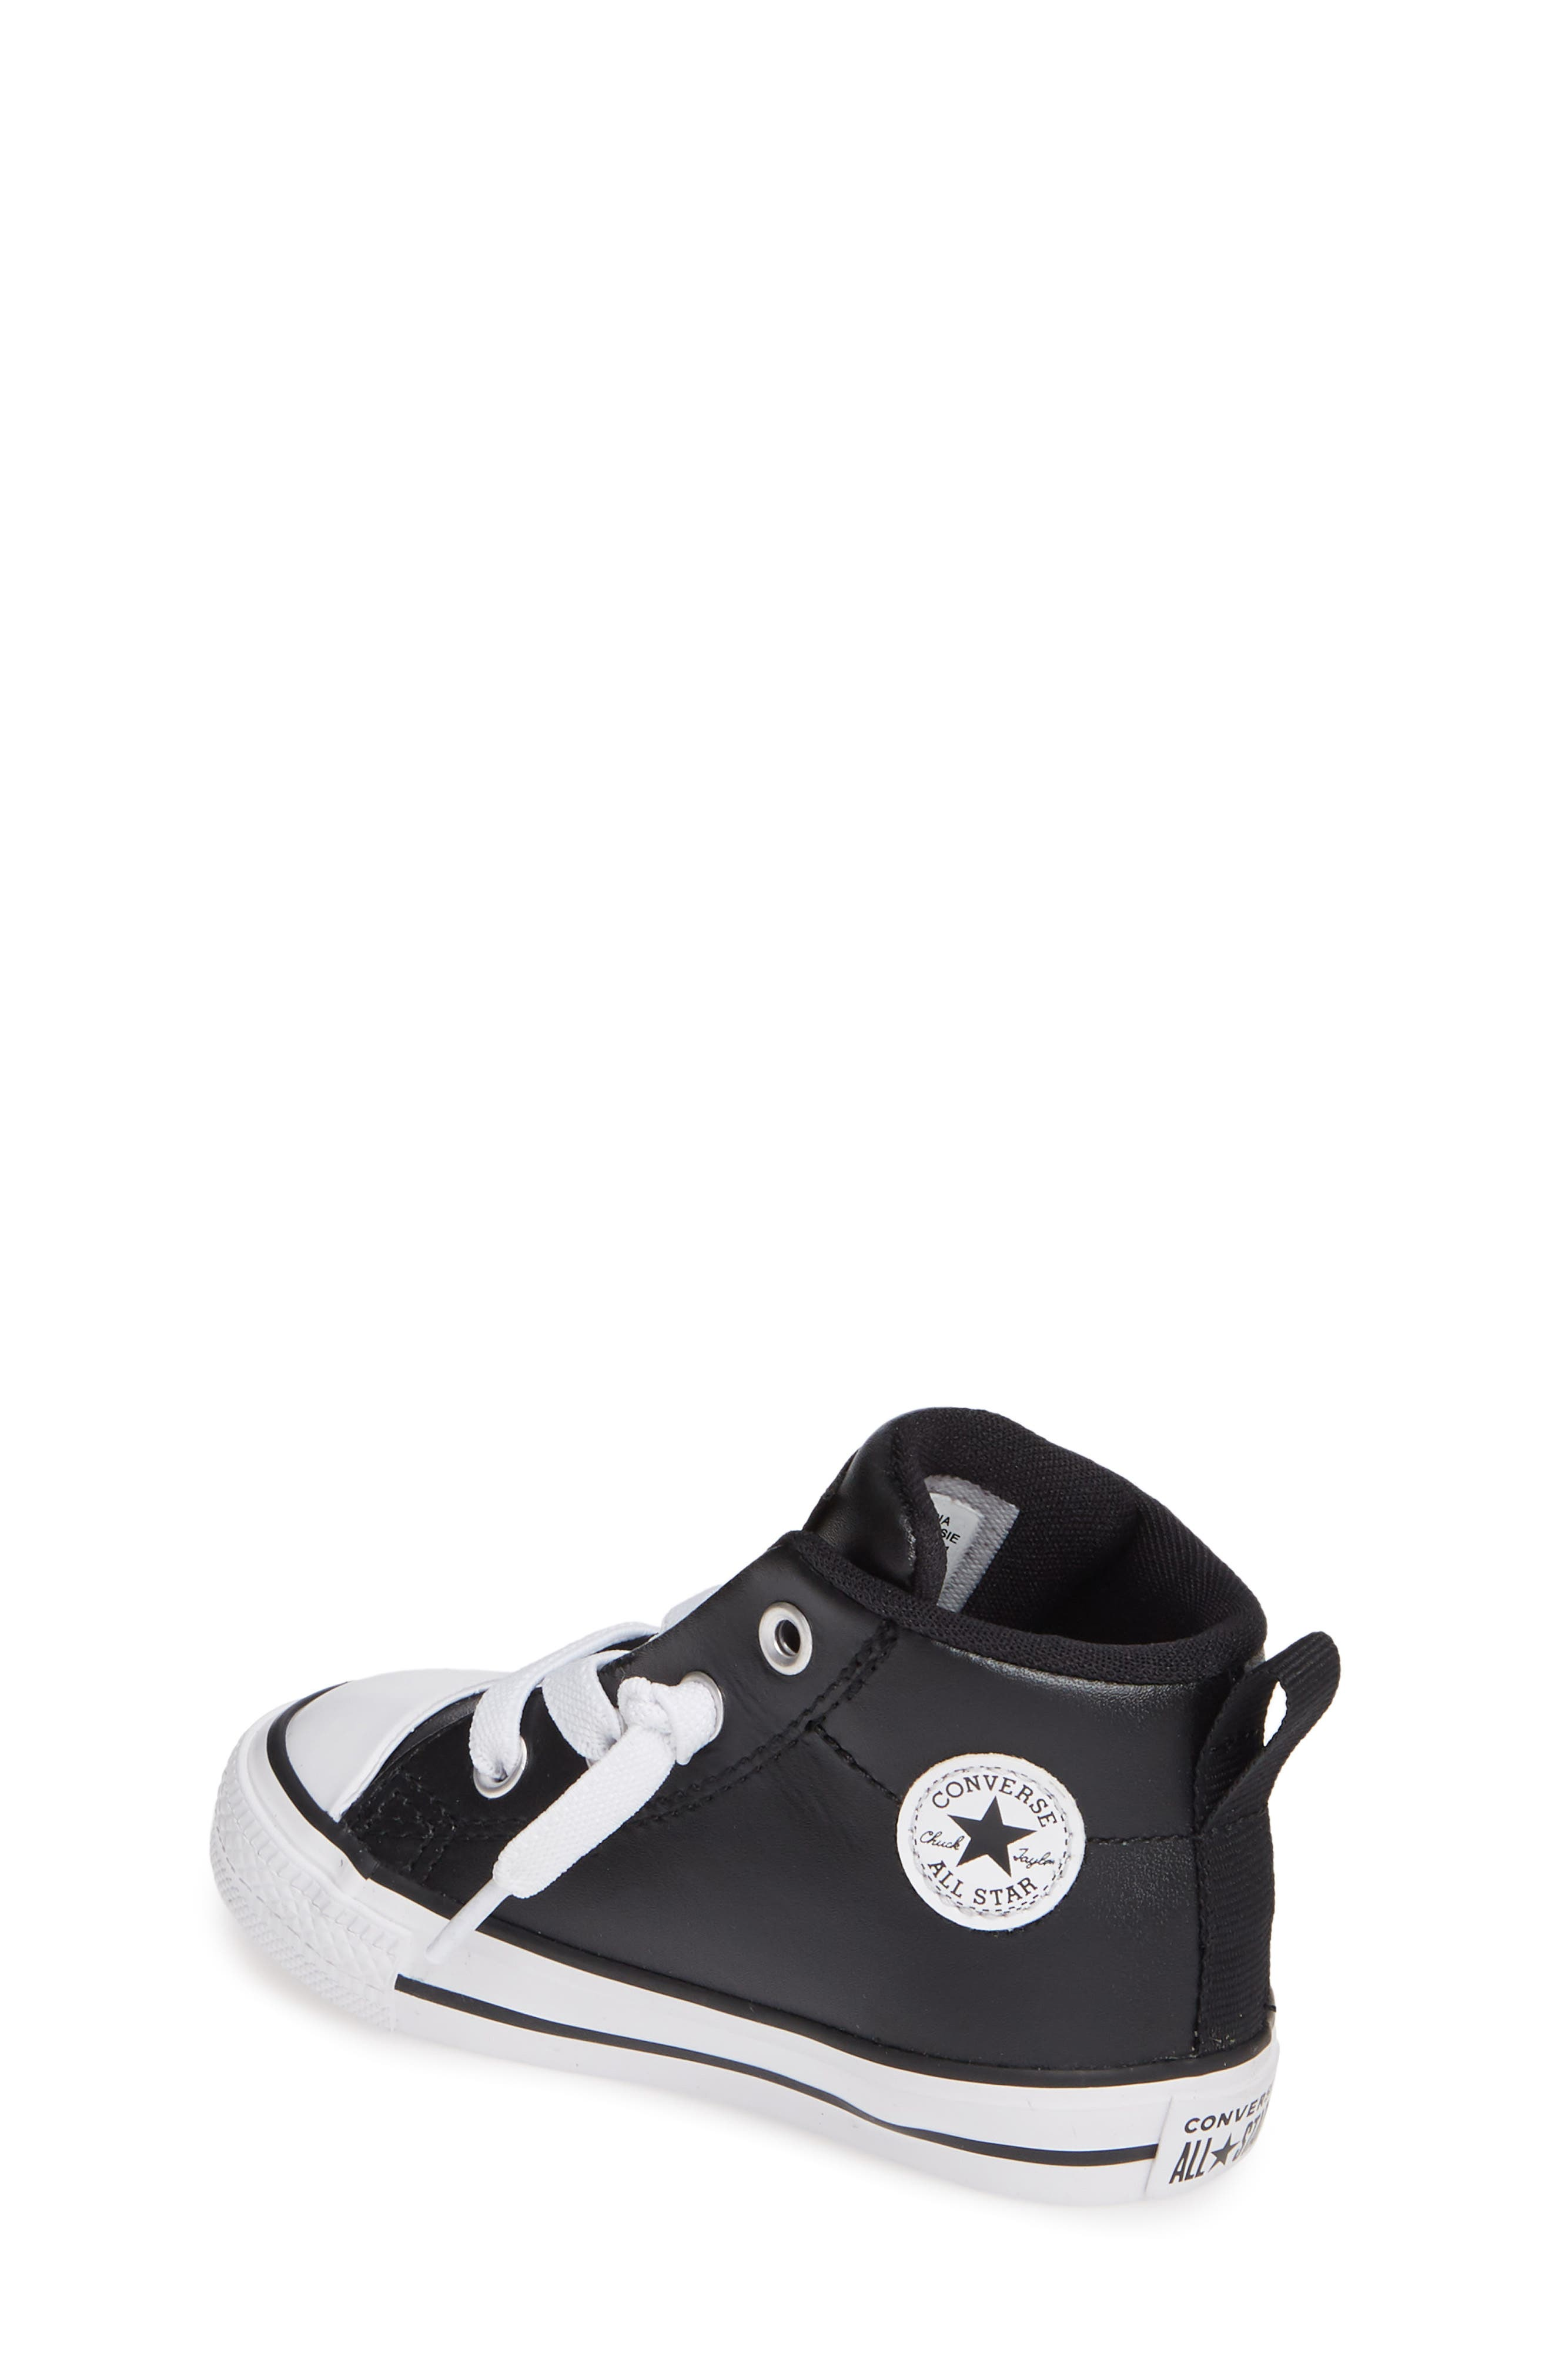 CONVERSE, Chuck Taylor<sup>®</sup> All Star<sup>®</sup> Street Mid Top Sneaker, Alternate thumbnail 2, color, BLACK/ BLACK/ WHITE